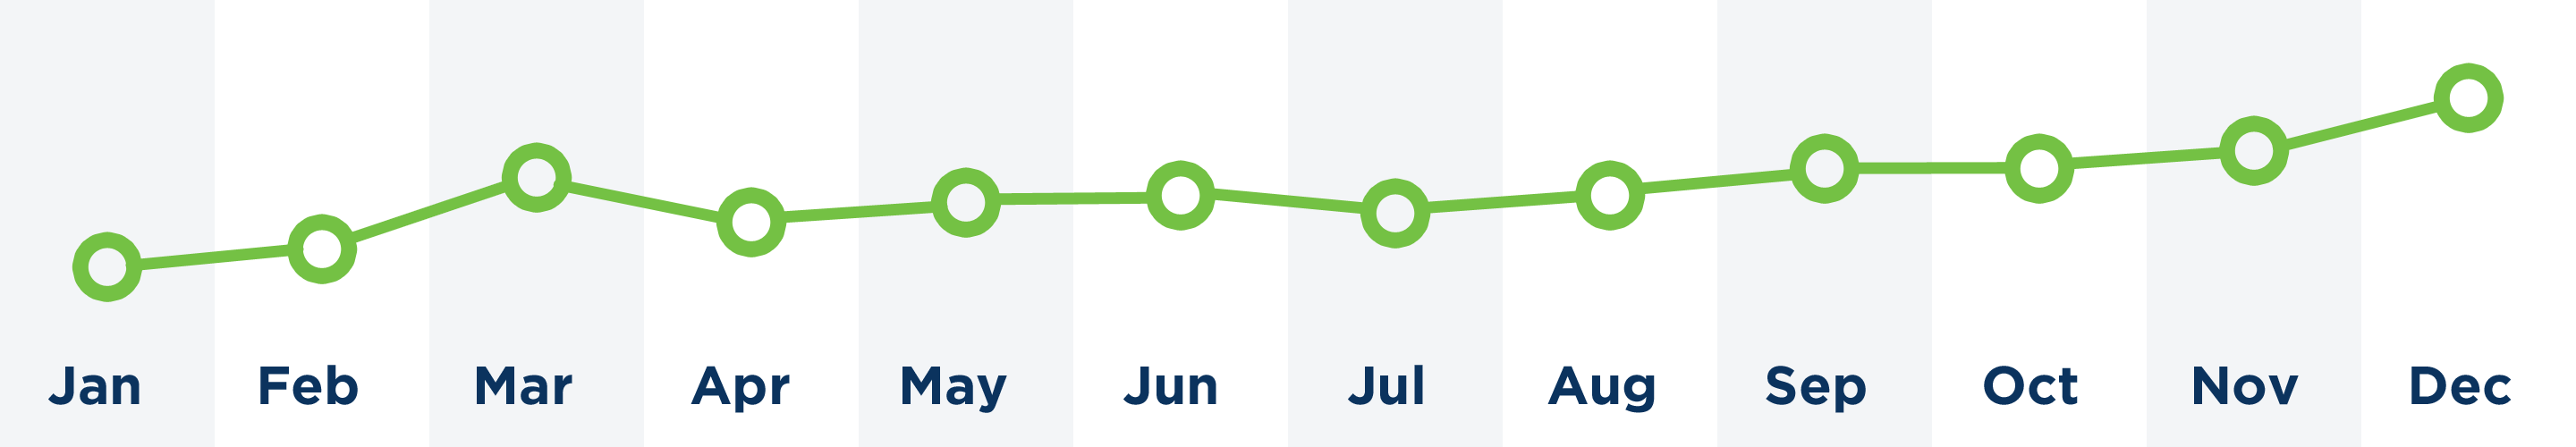 NPS score month by month